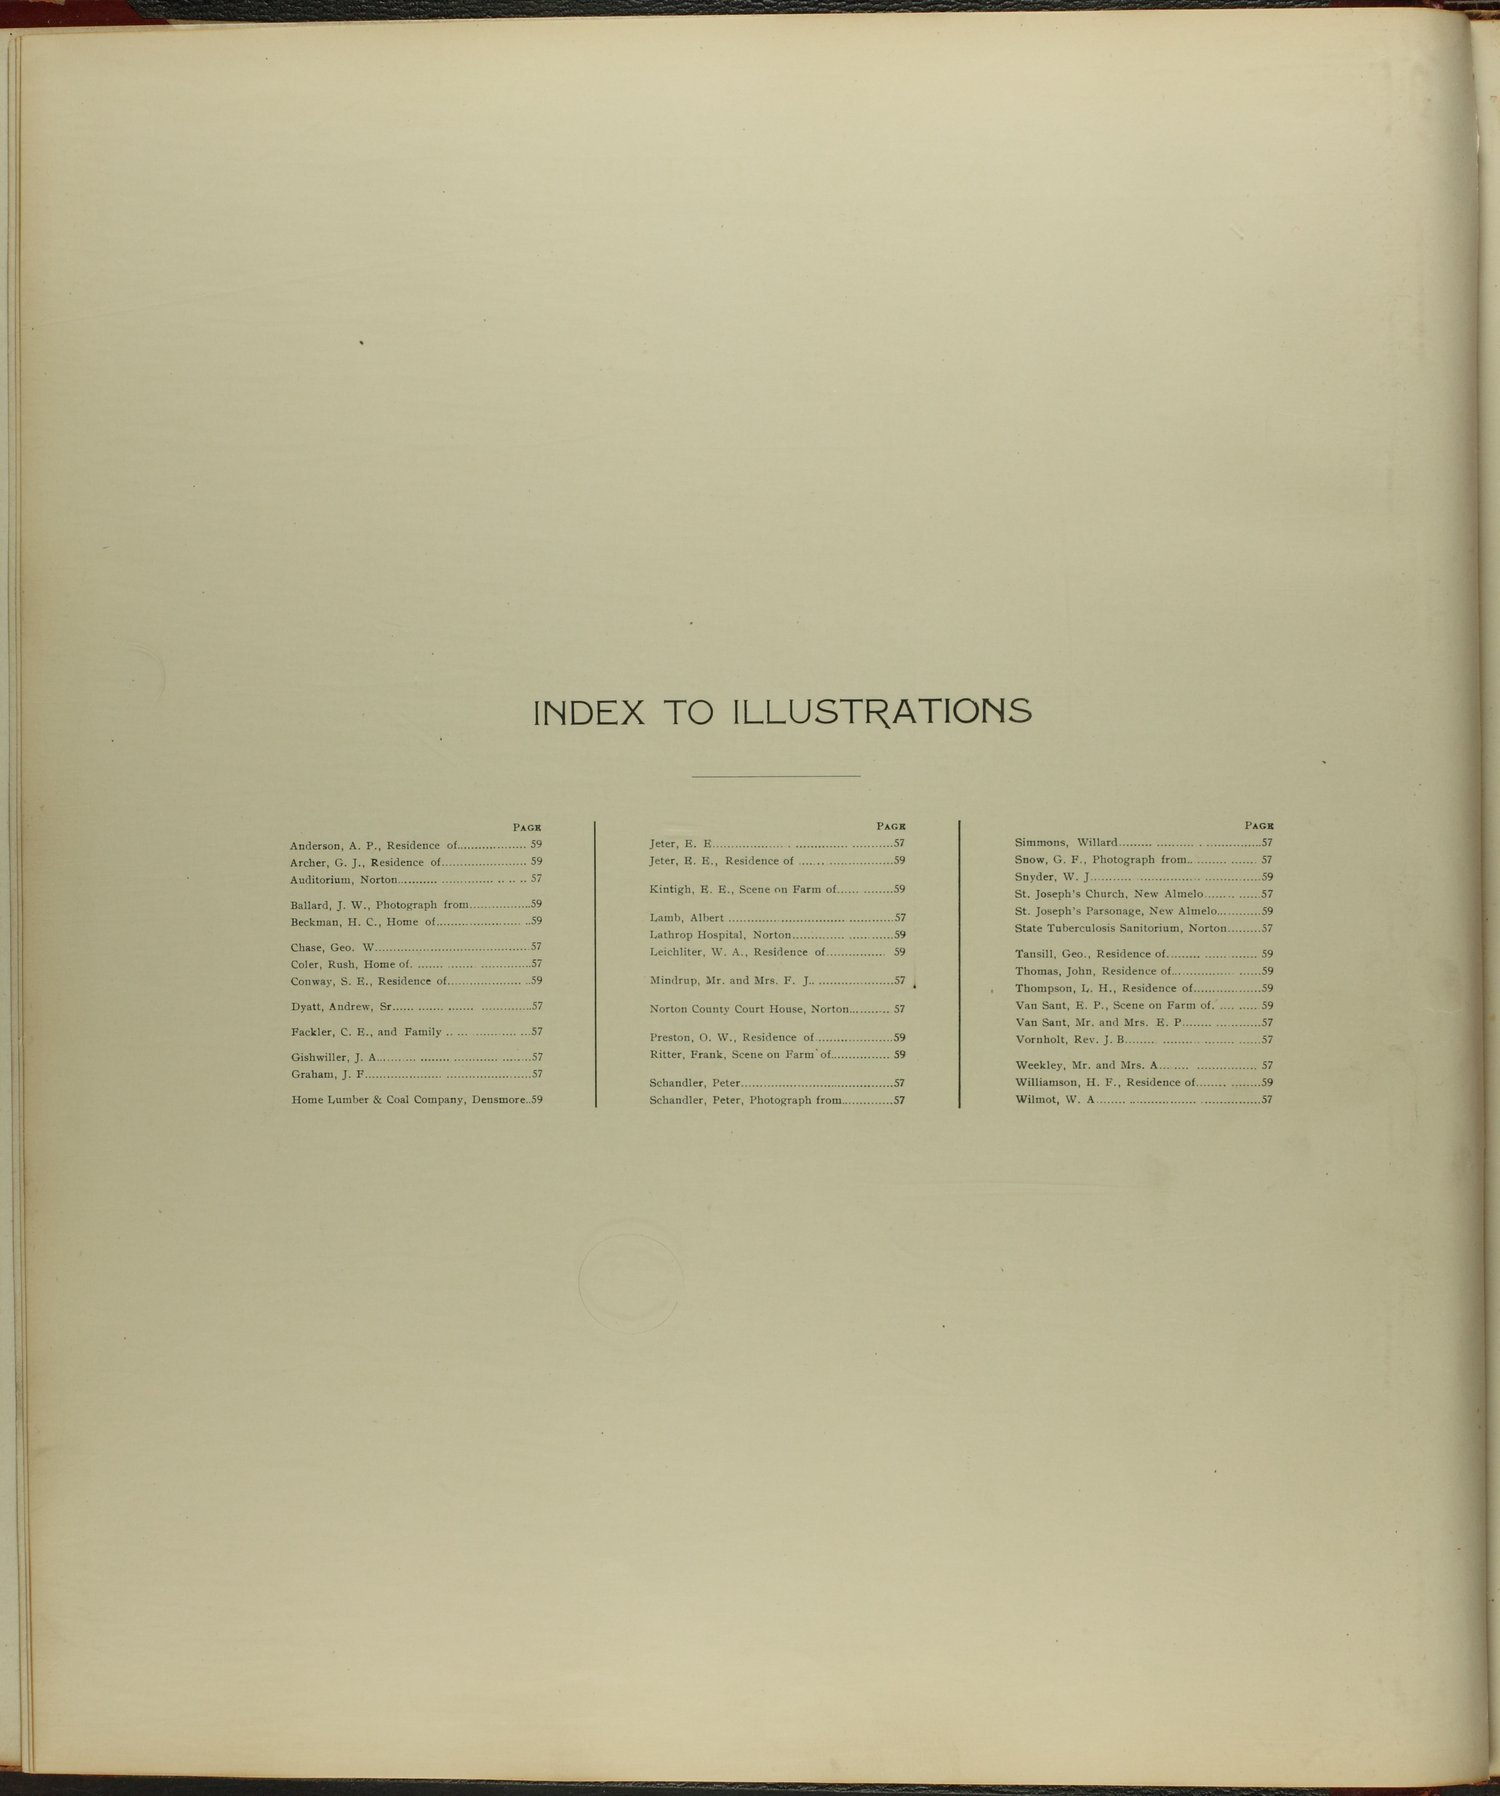 Standard atlas of Norton County, Kansas - Index to Illustrations